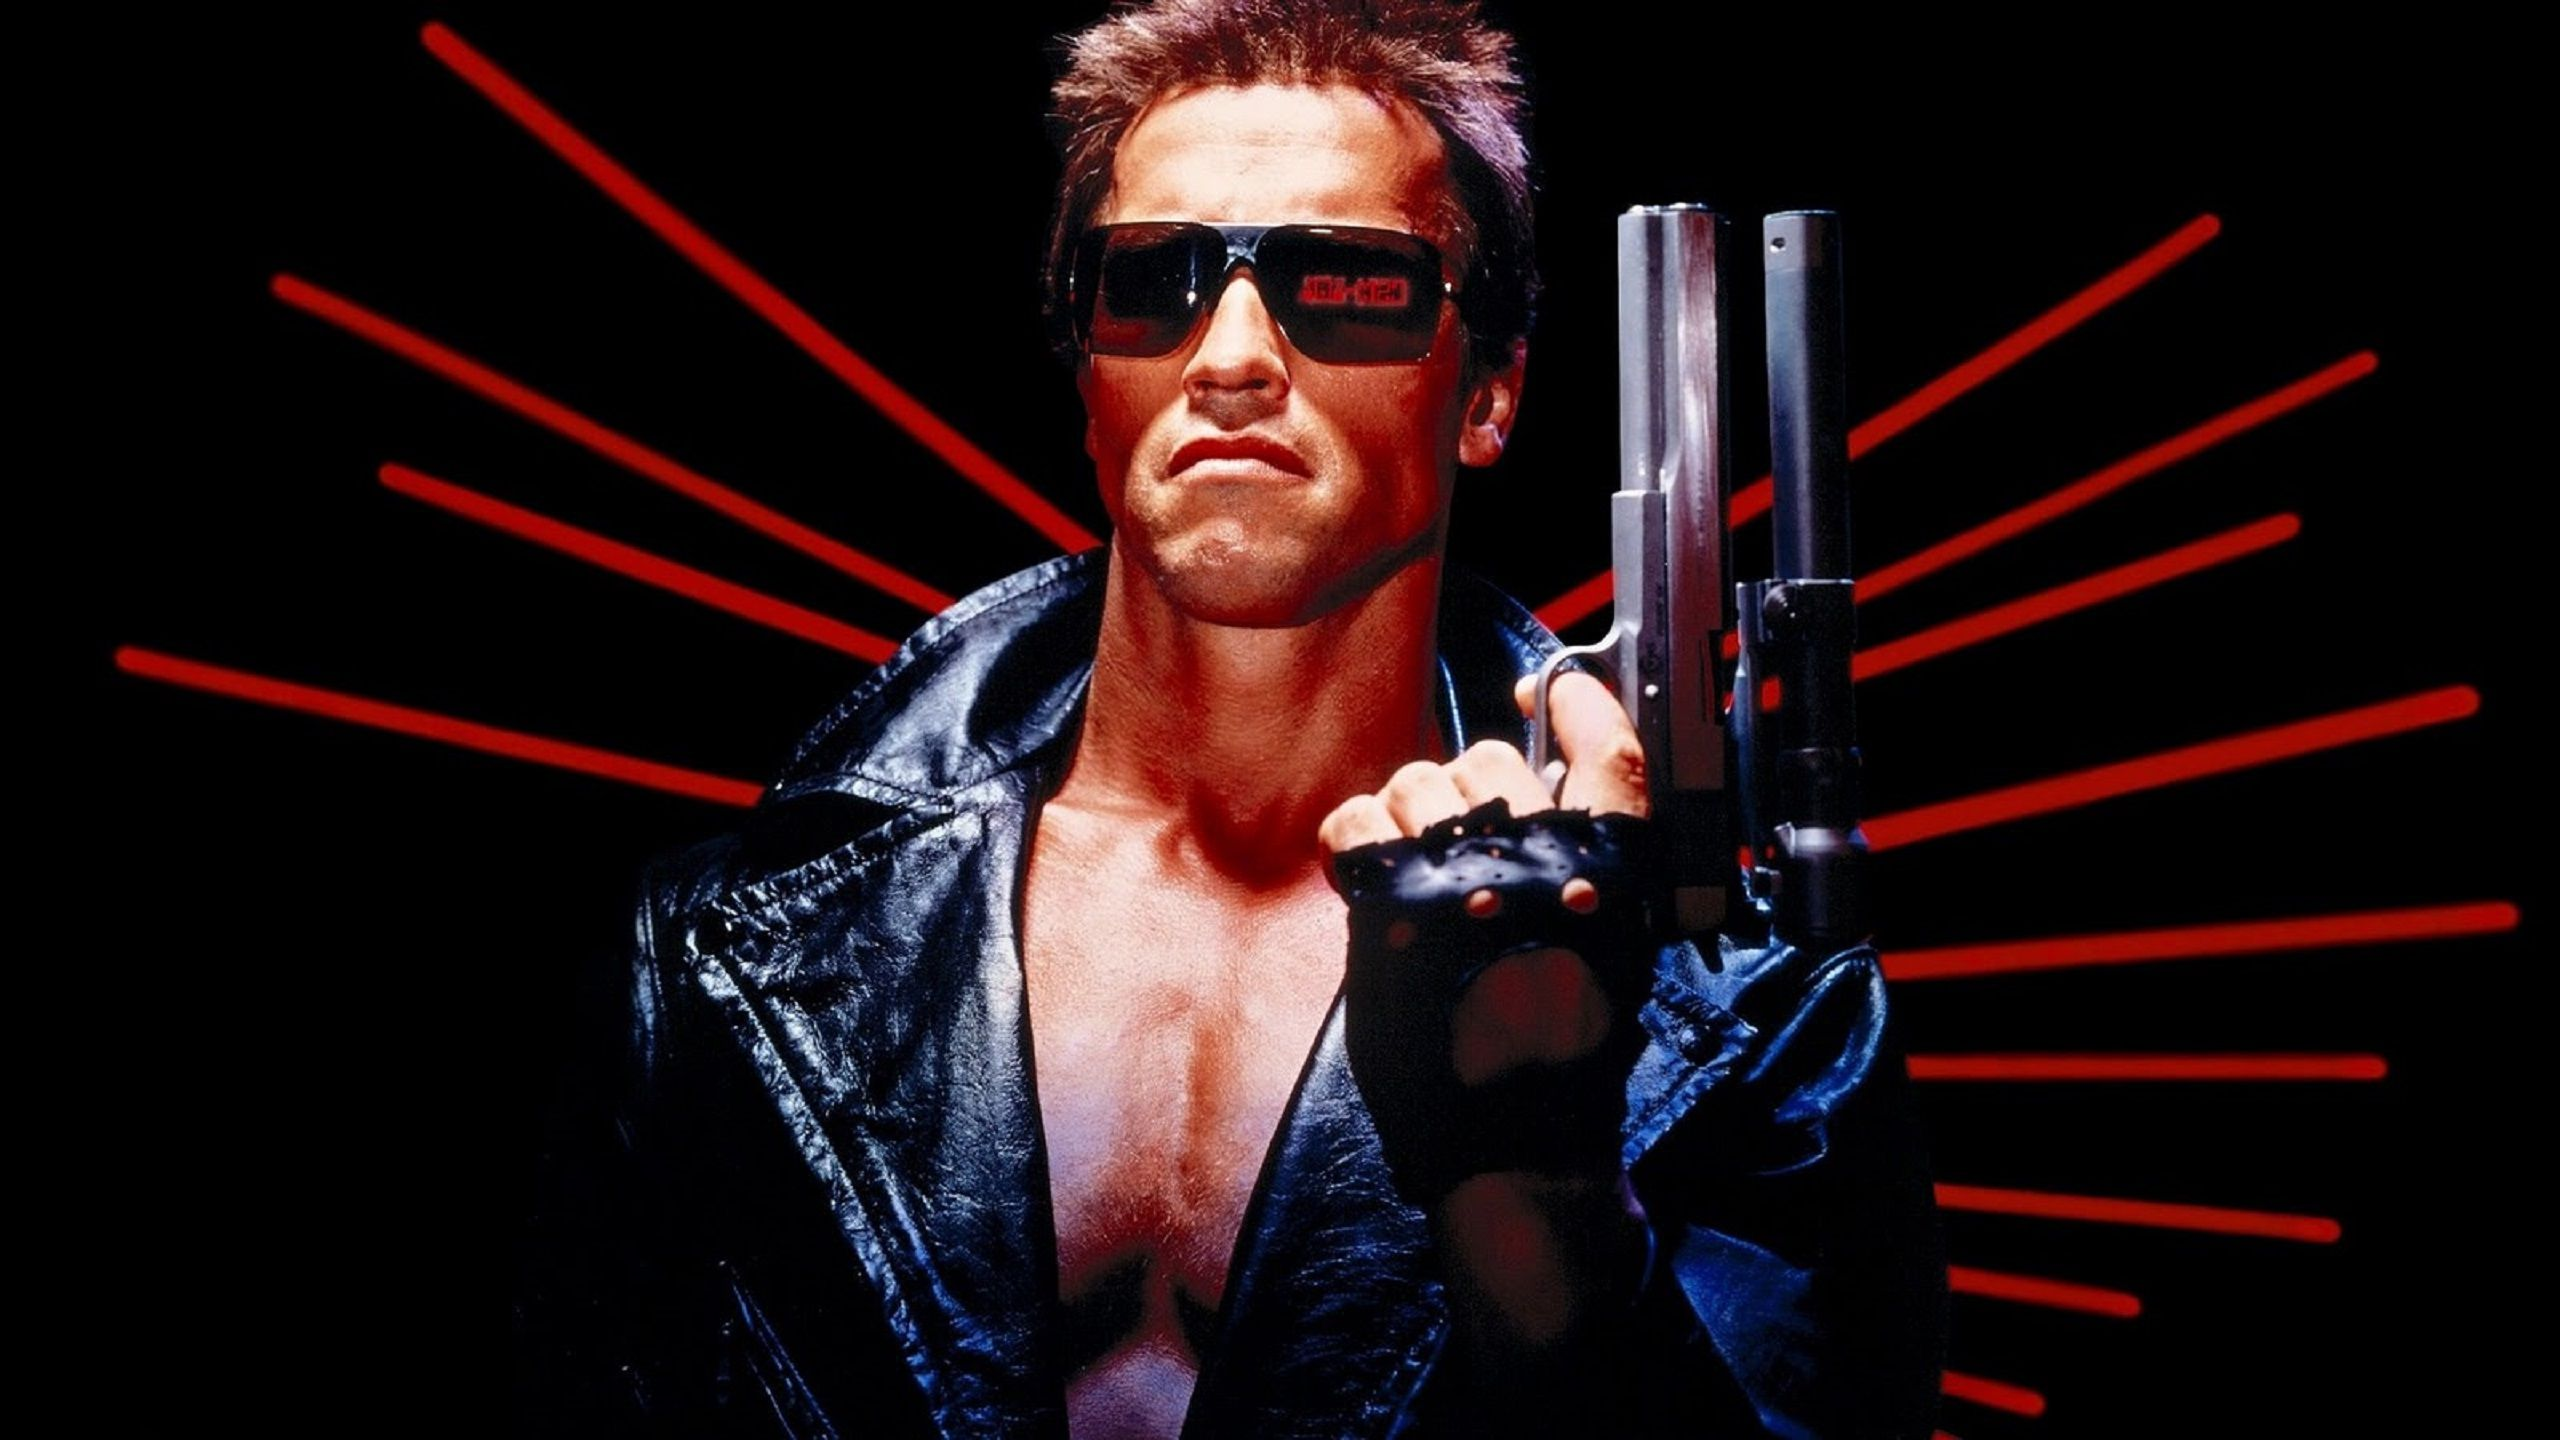 The Terminator 1984 young Arnold Schwarzenegger wallpaper and poster